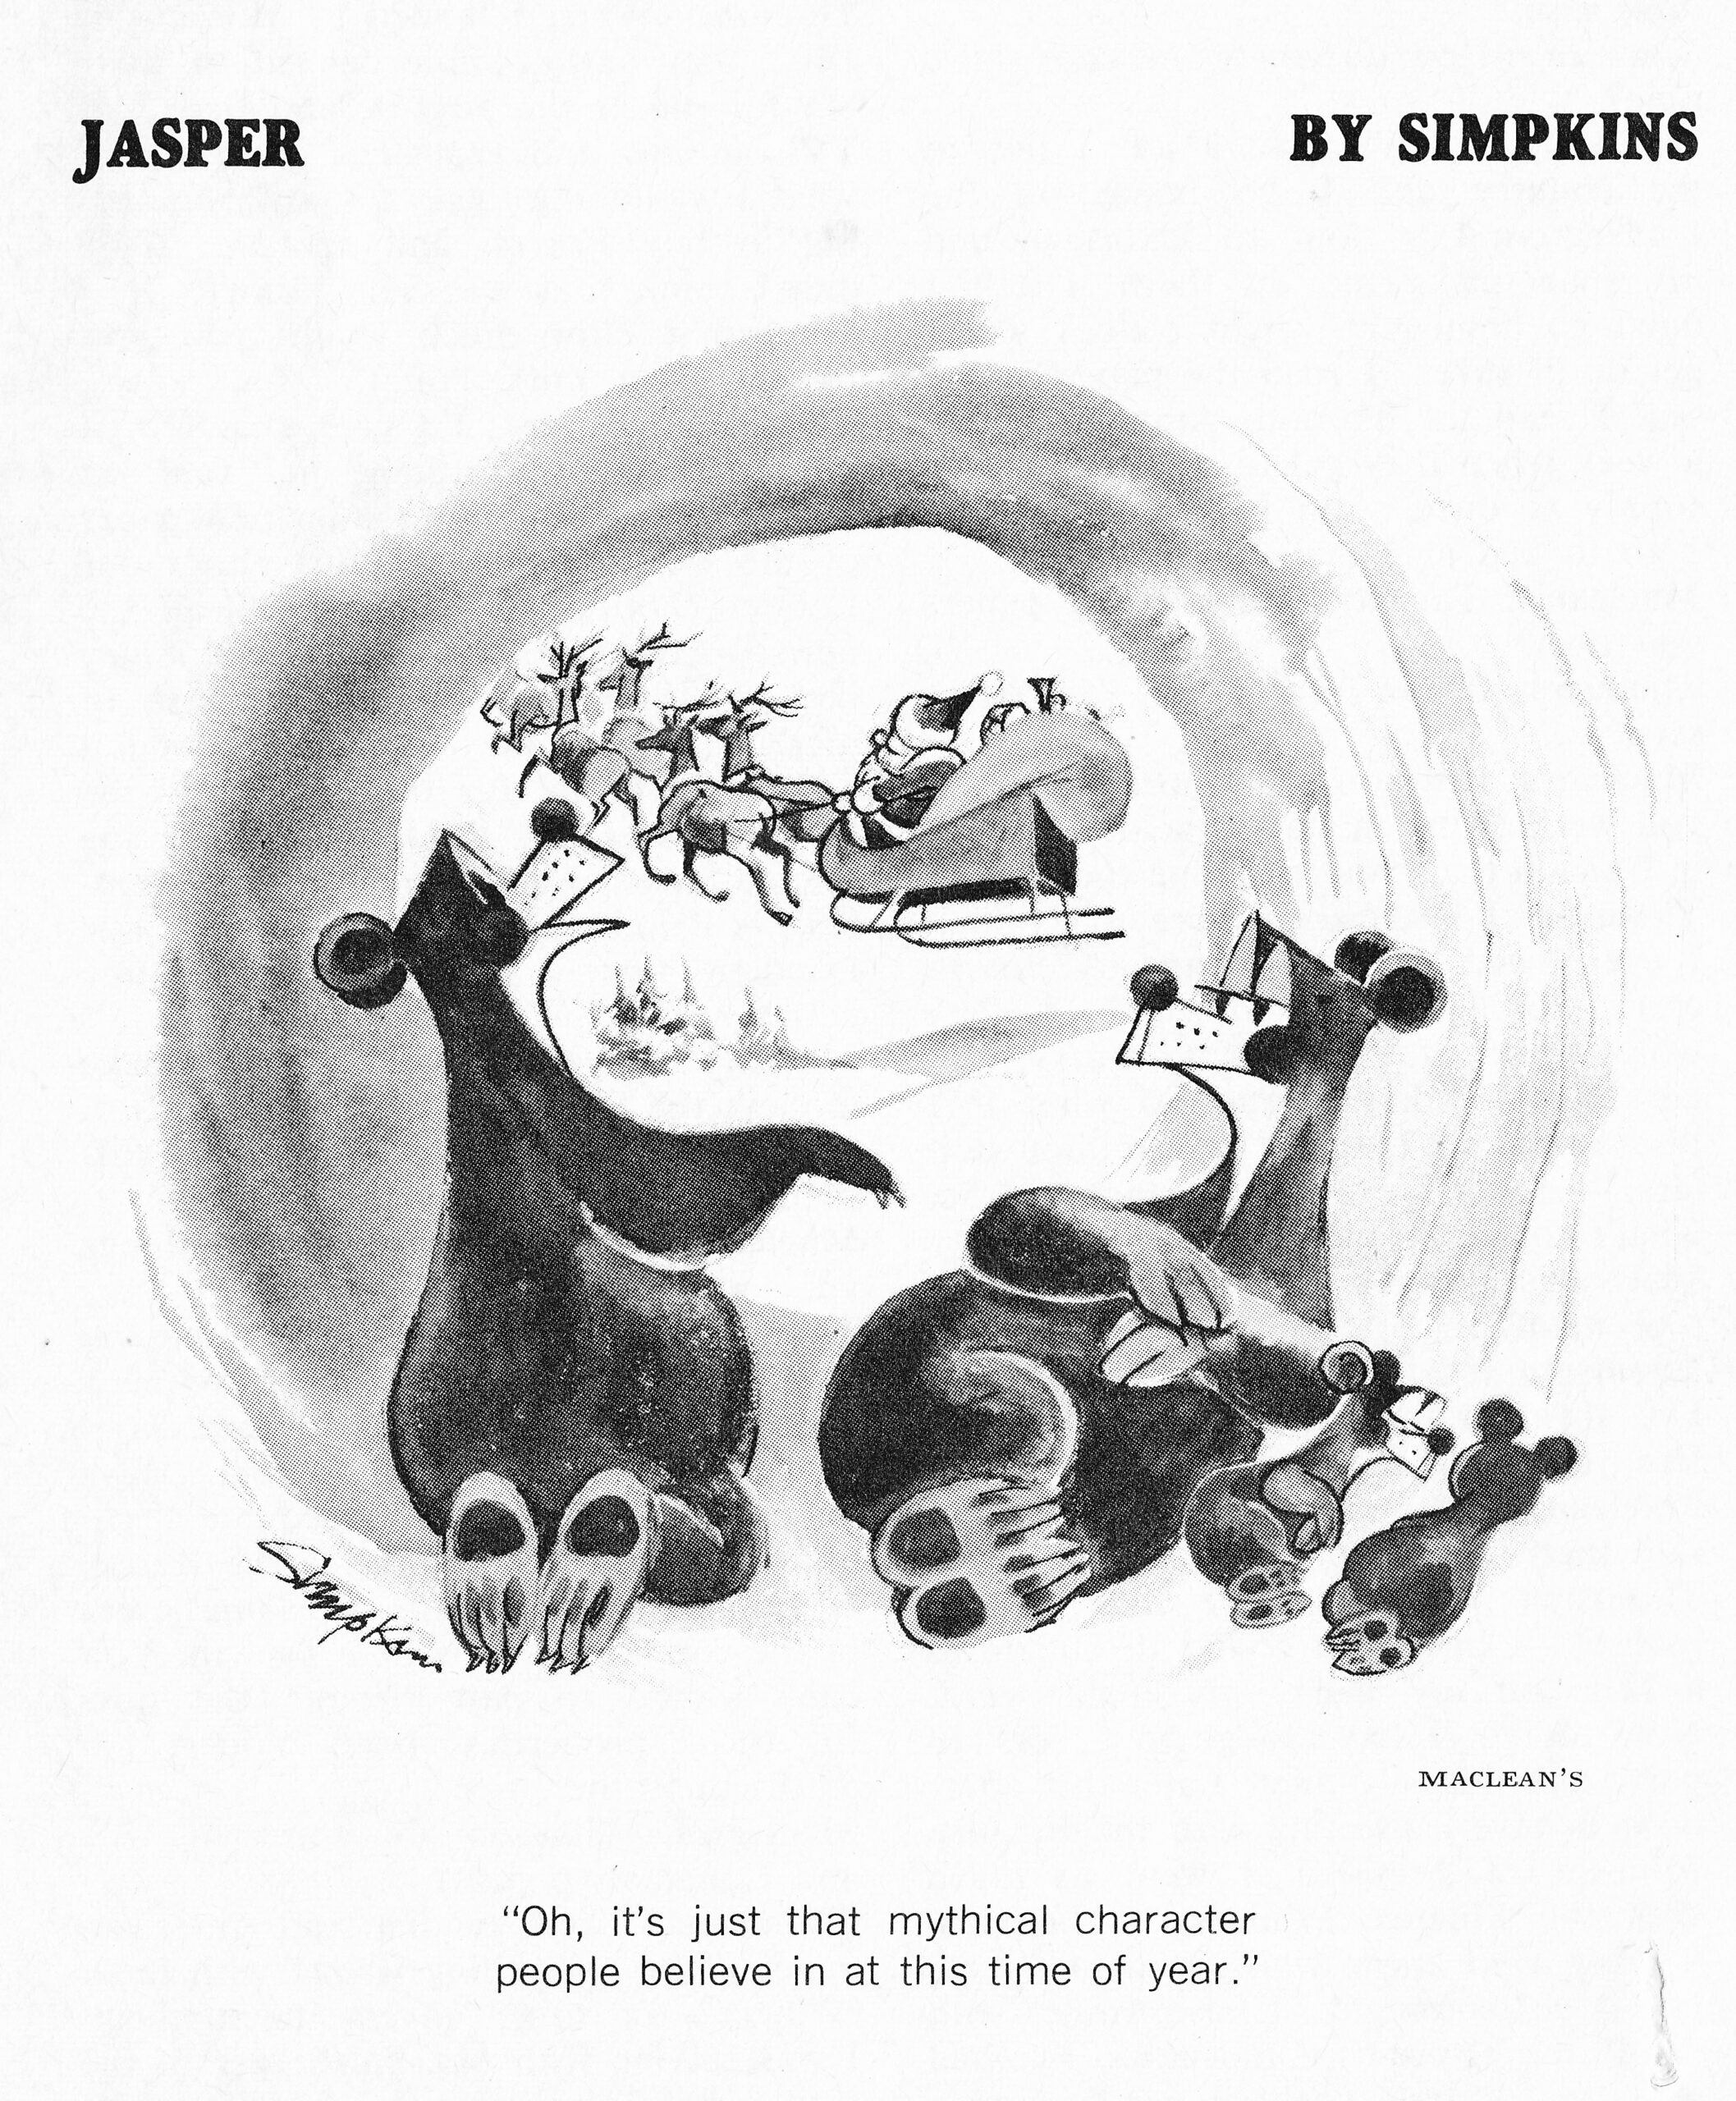 C:\Users\Robert\Documents\CANADIAN CARTOONING ILLUSTRATION and ANIMATION\IMAGE CARTOON J\JASPER THE BEAR Maclean's Jan 1969, 74.jpg